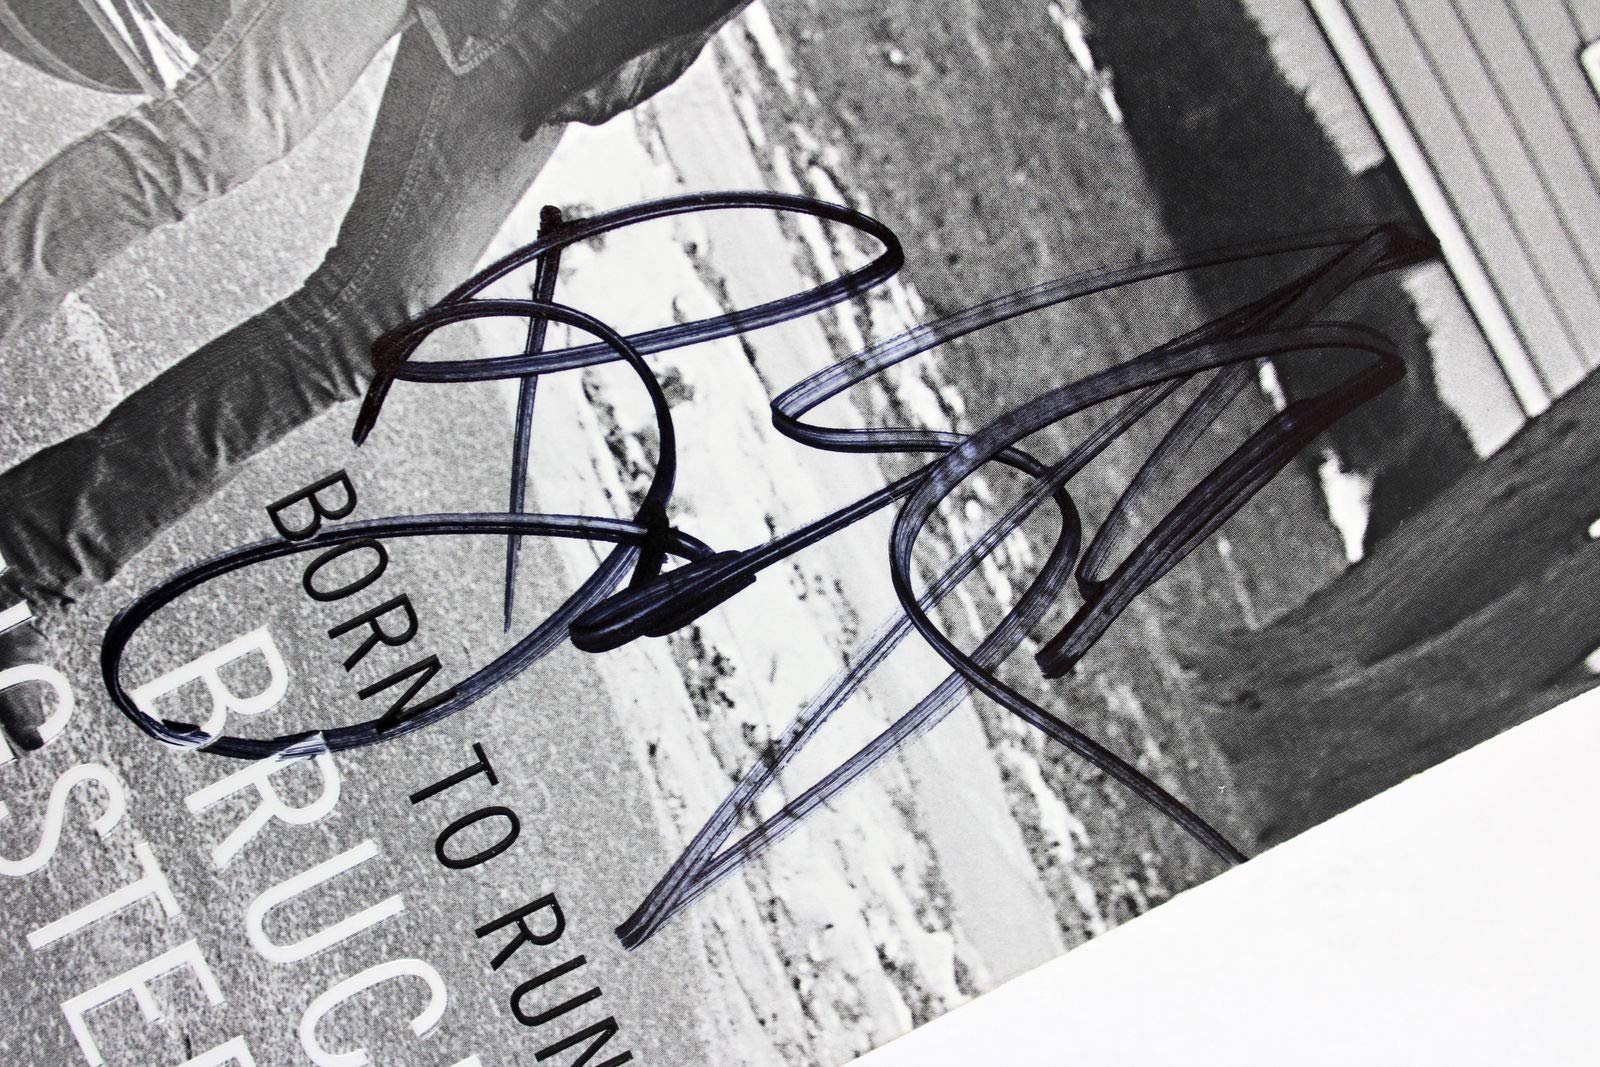 Bruce Springsteen Autographed Signed Memorabilia Born To Run 1st Edition Paperback Book Beckett #A88690